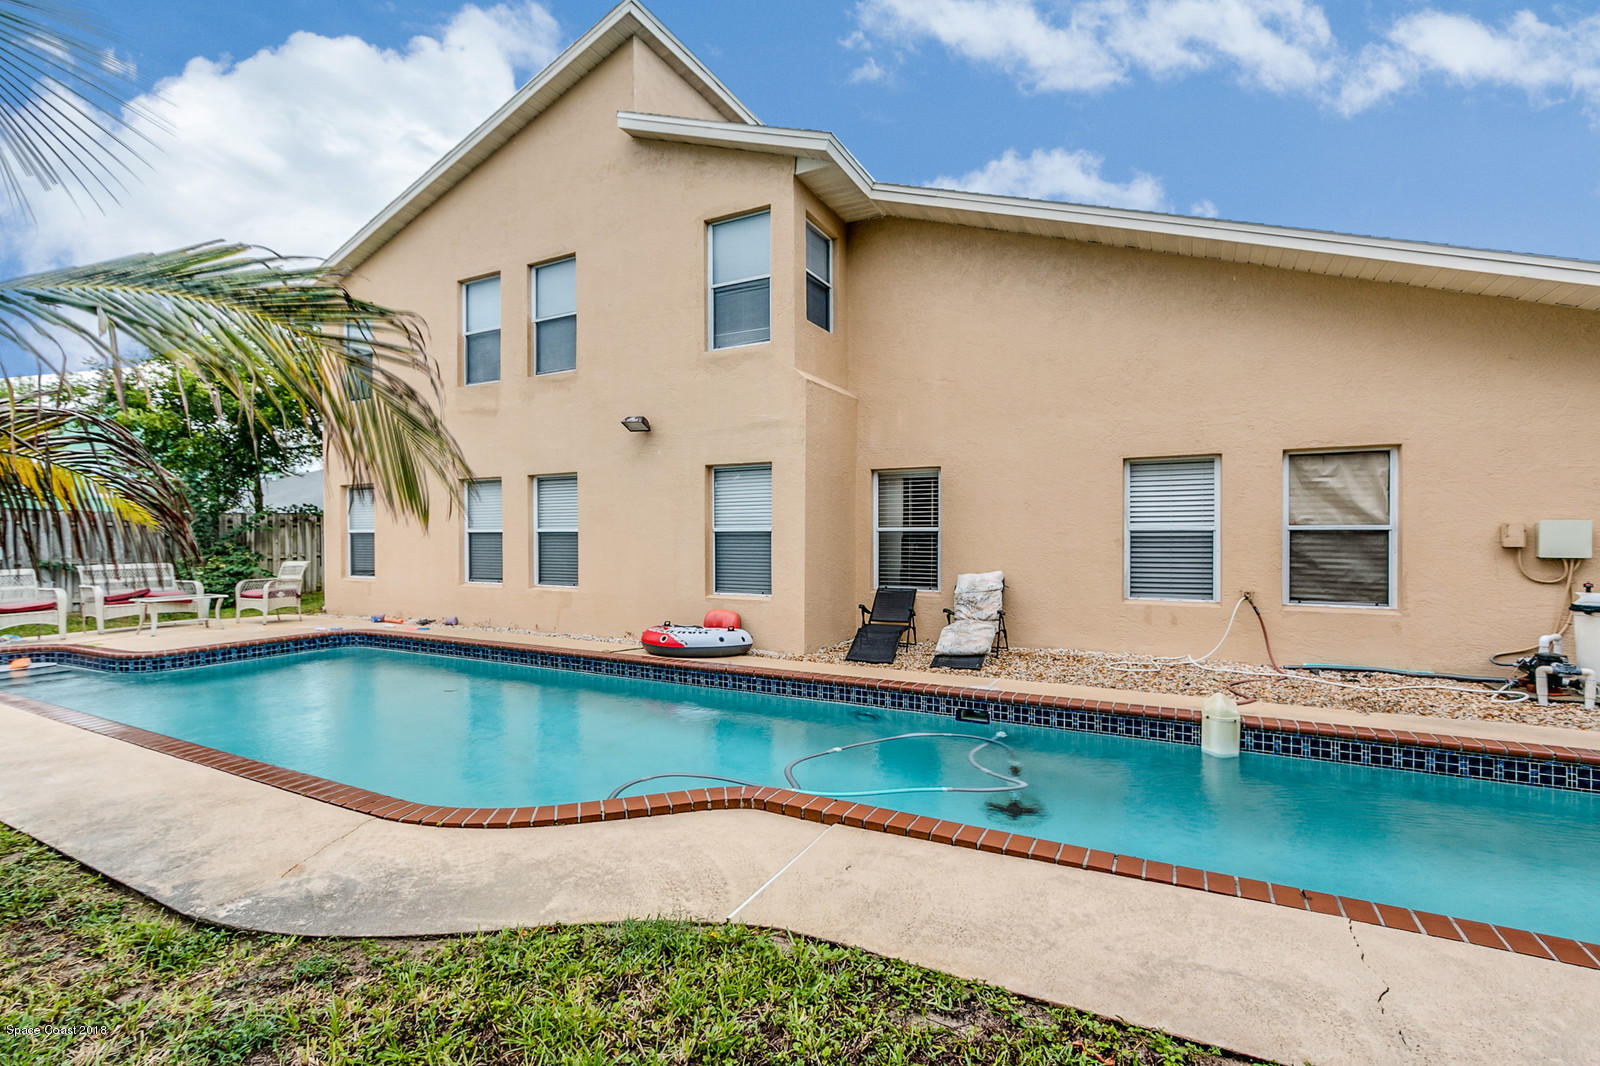 Multi-Family Homes for Sale at 293 Provincial Melbourne, Florida 32903 United States